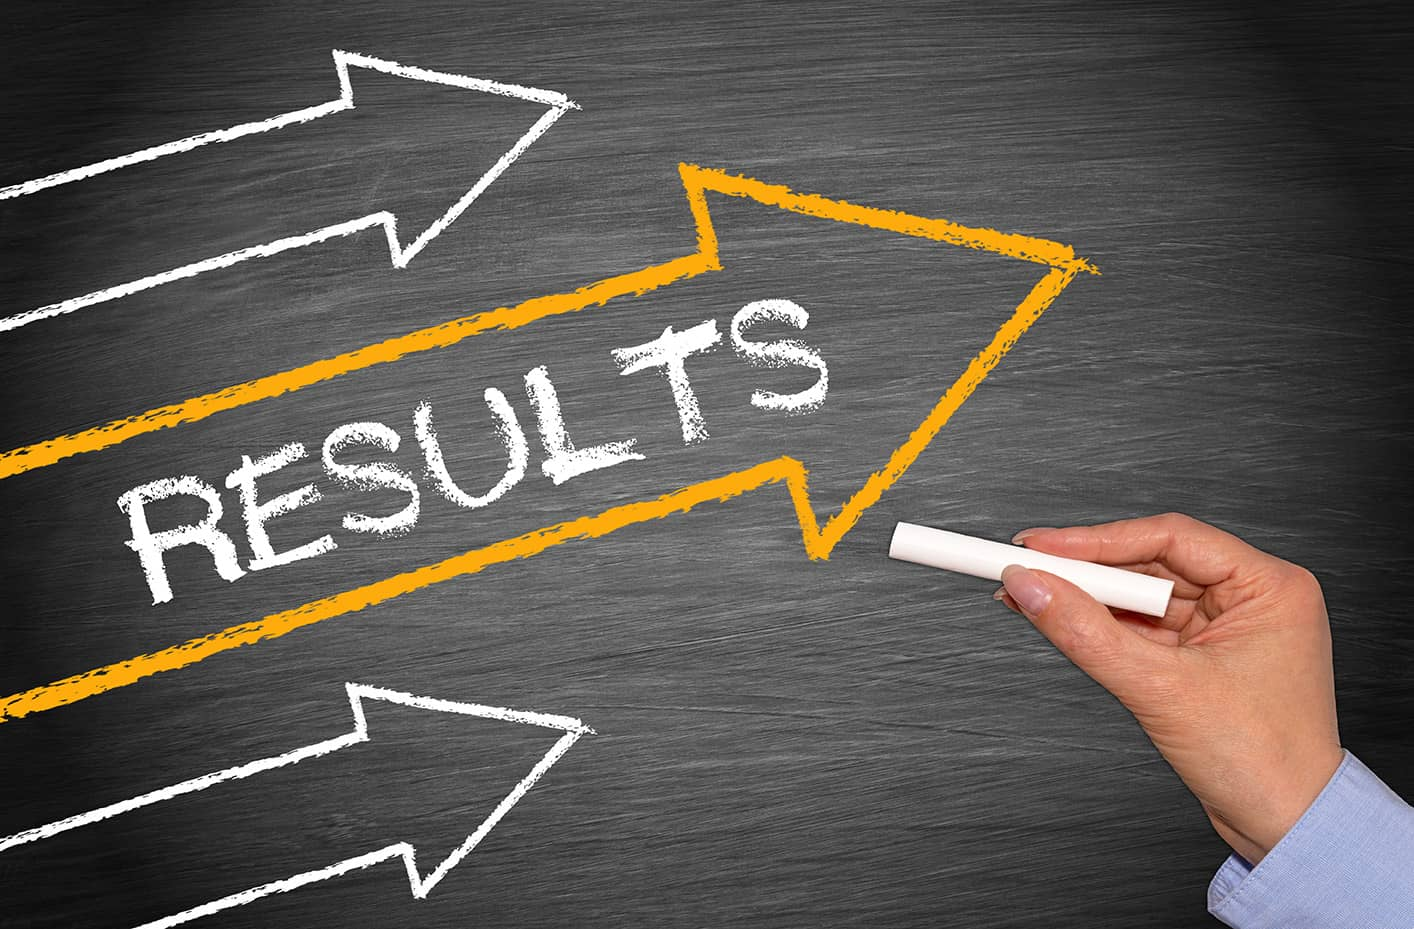 Choose key performance indicators to measure results